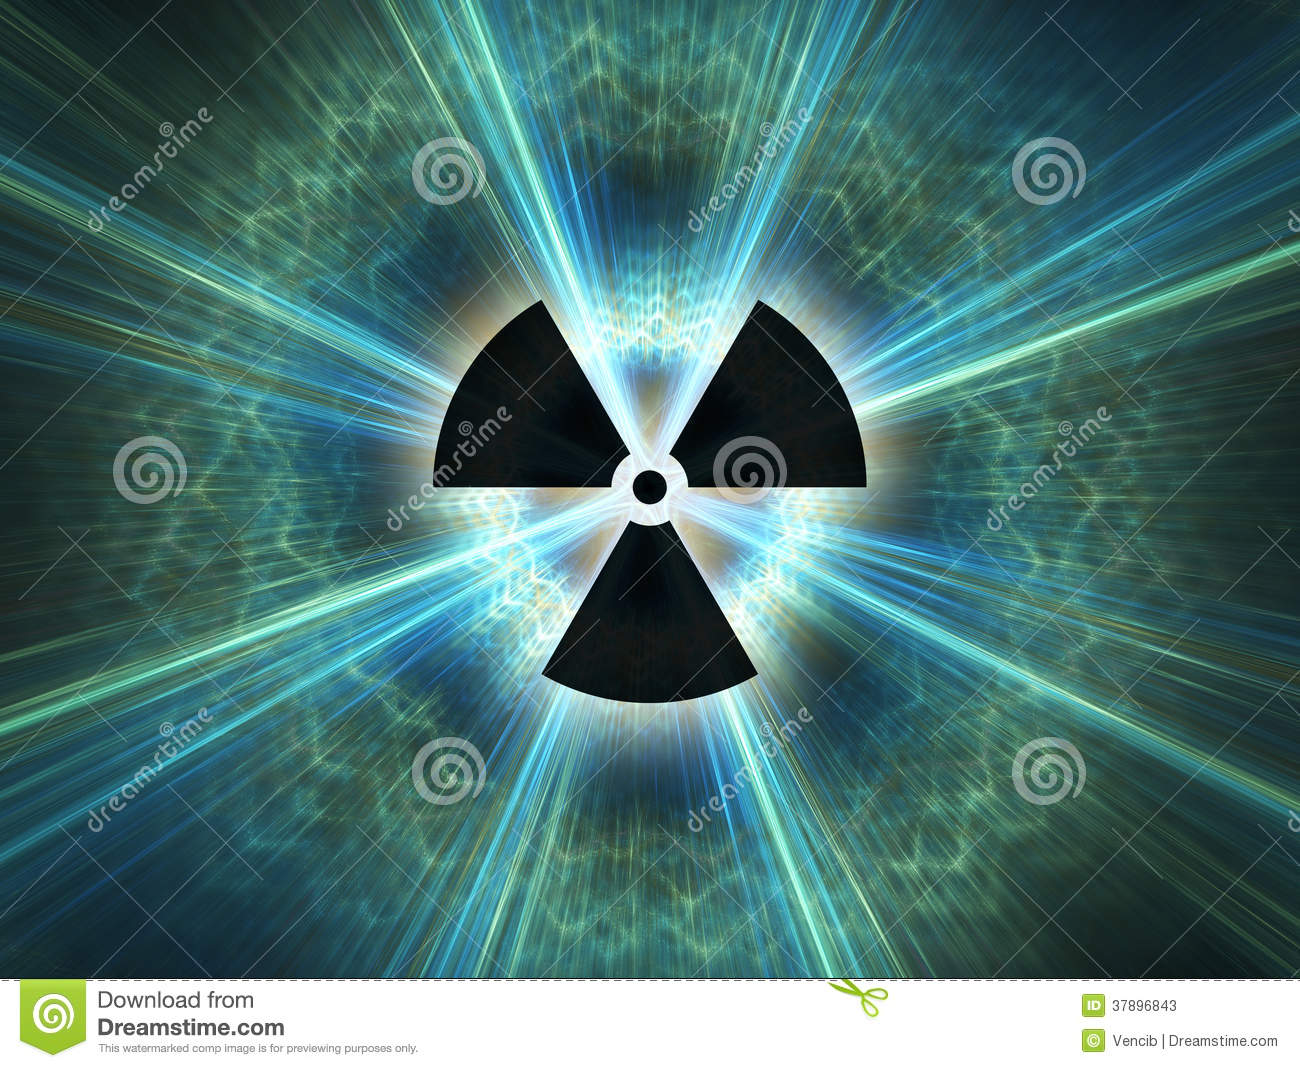 Danger Sign Wallpapers Nuclear Radiation Symb...